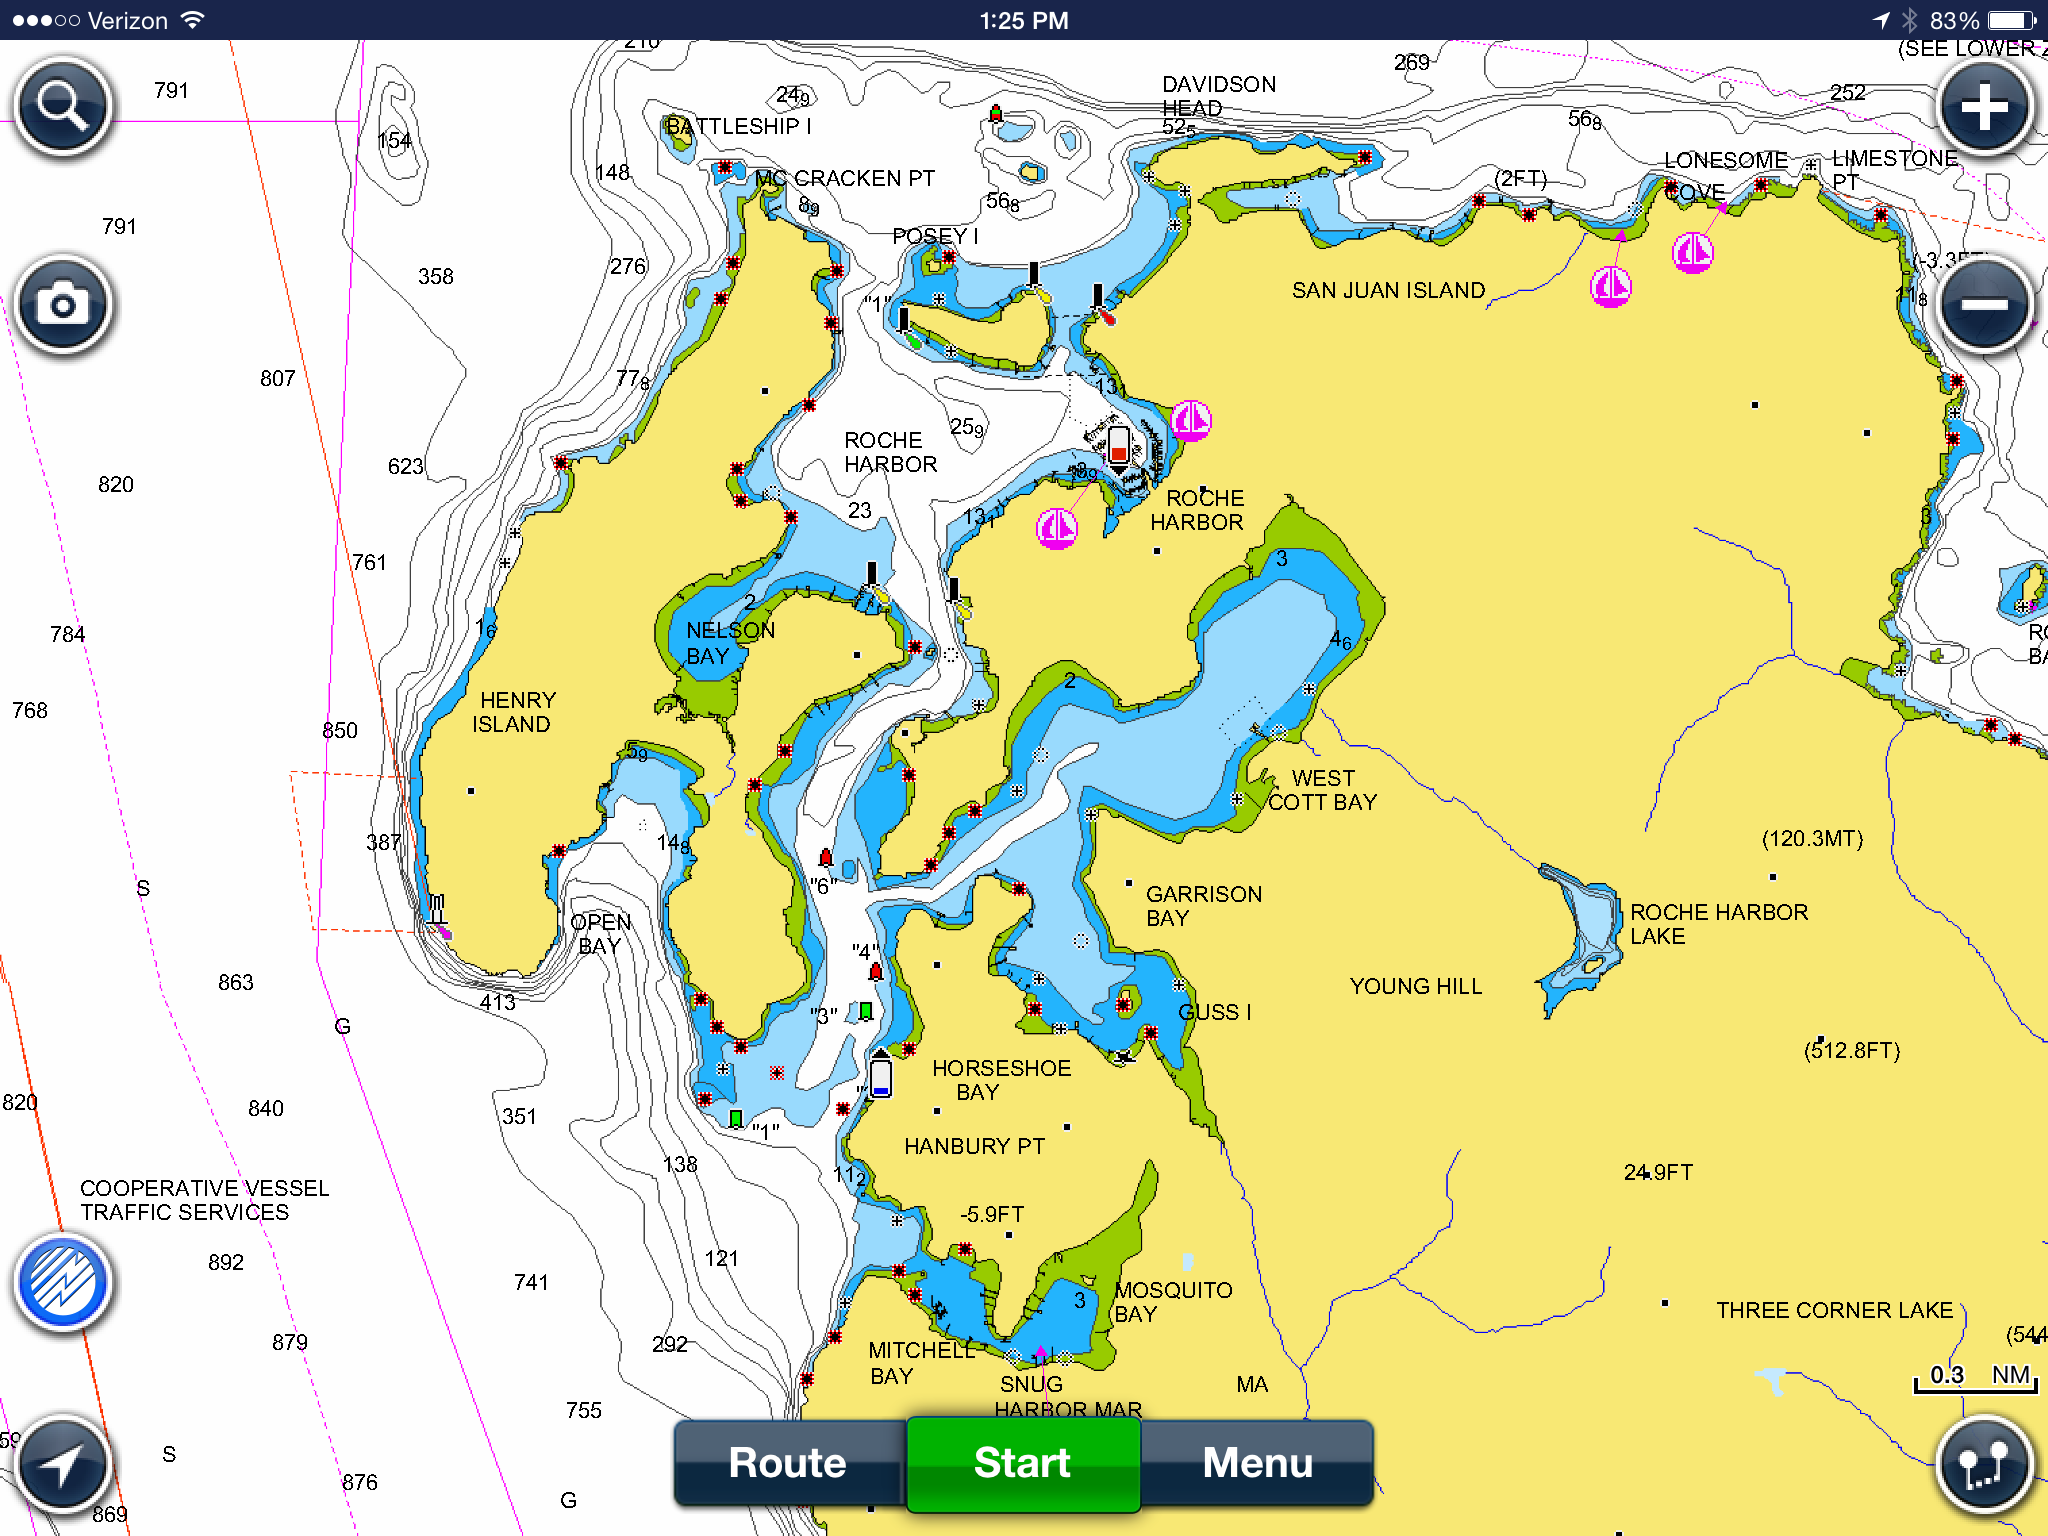 Navionics Announces Boating App with Free US Govt Charts | Cruising